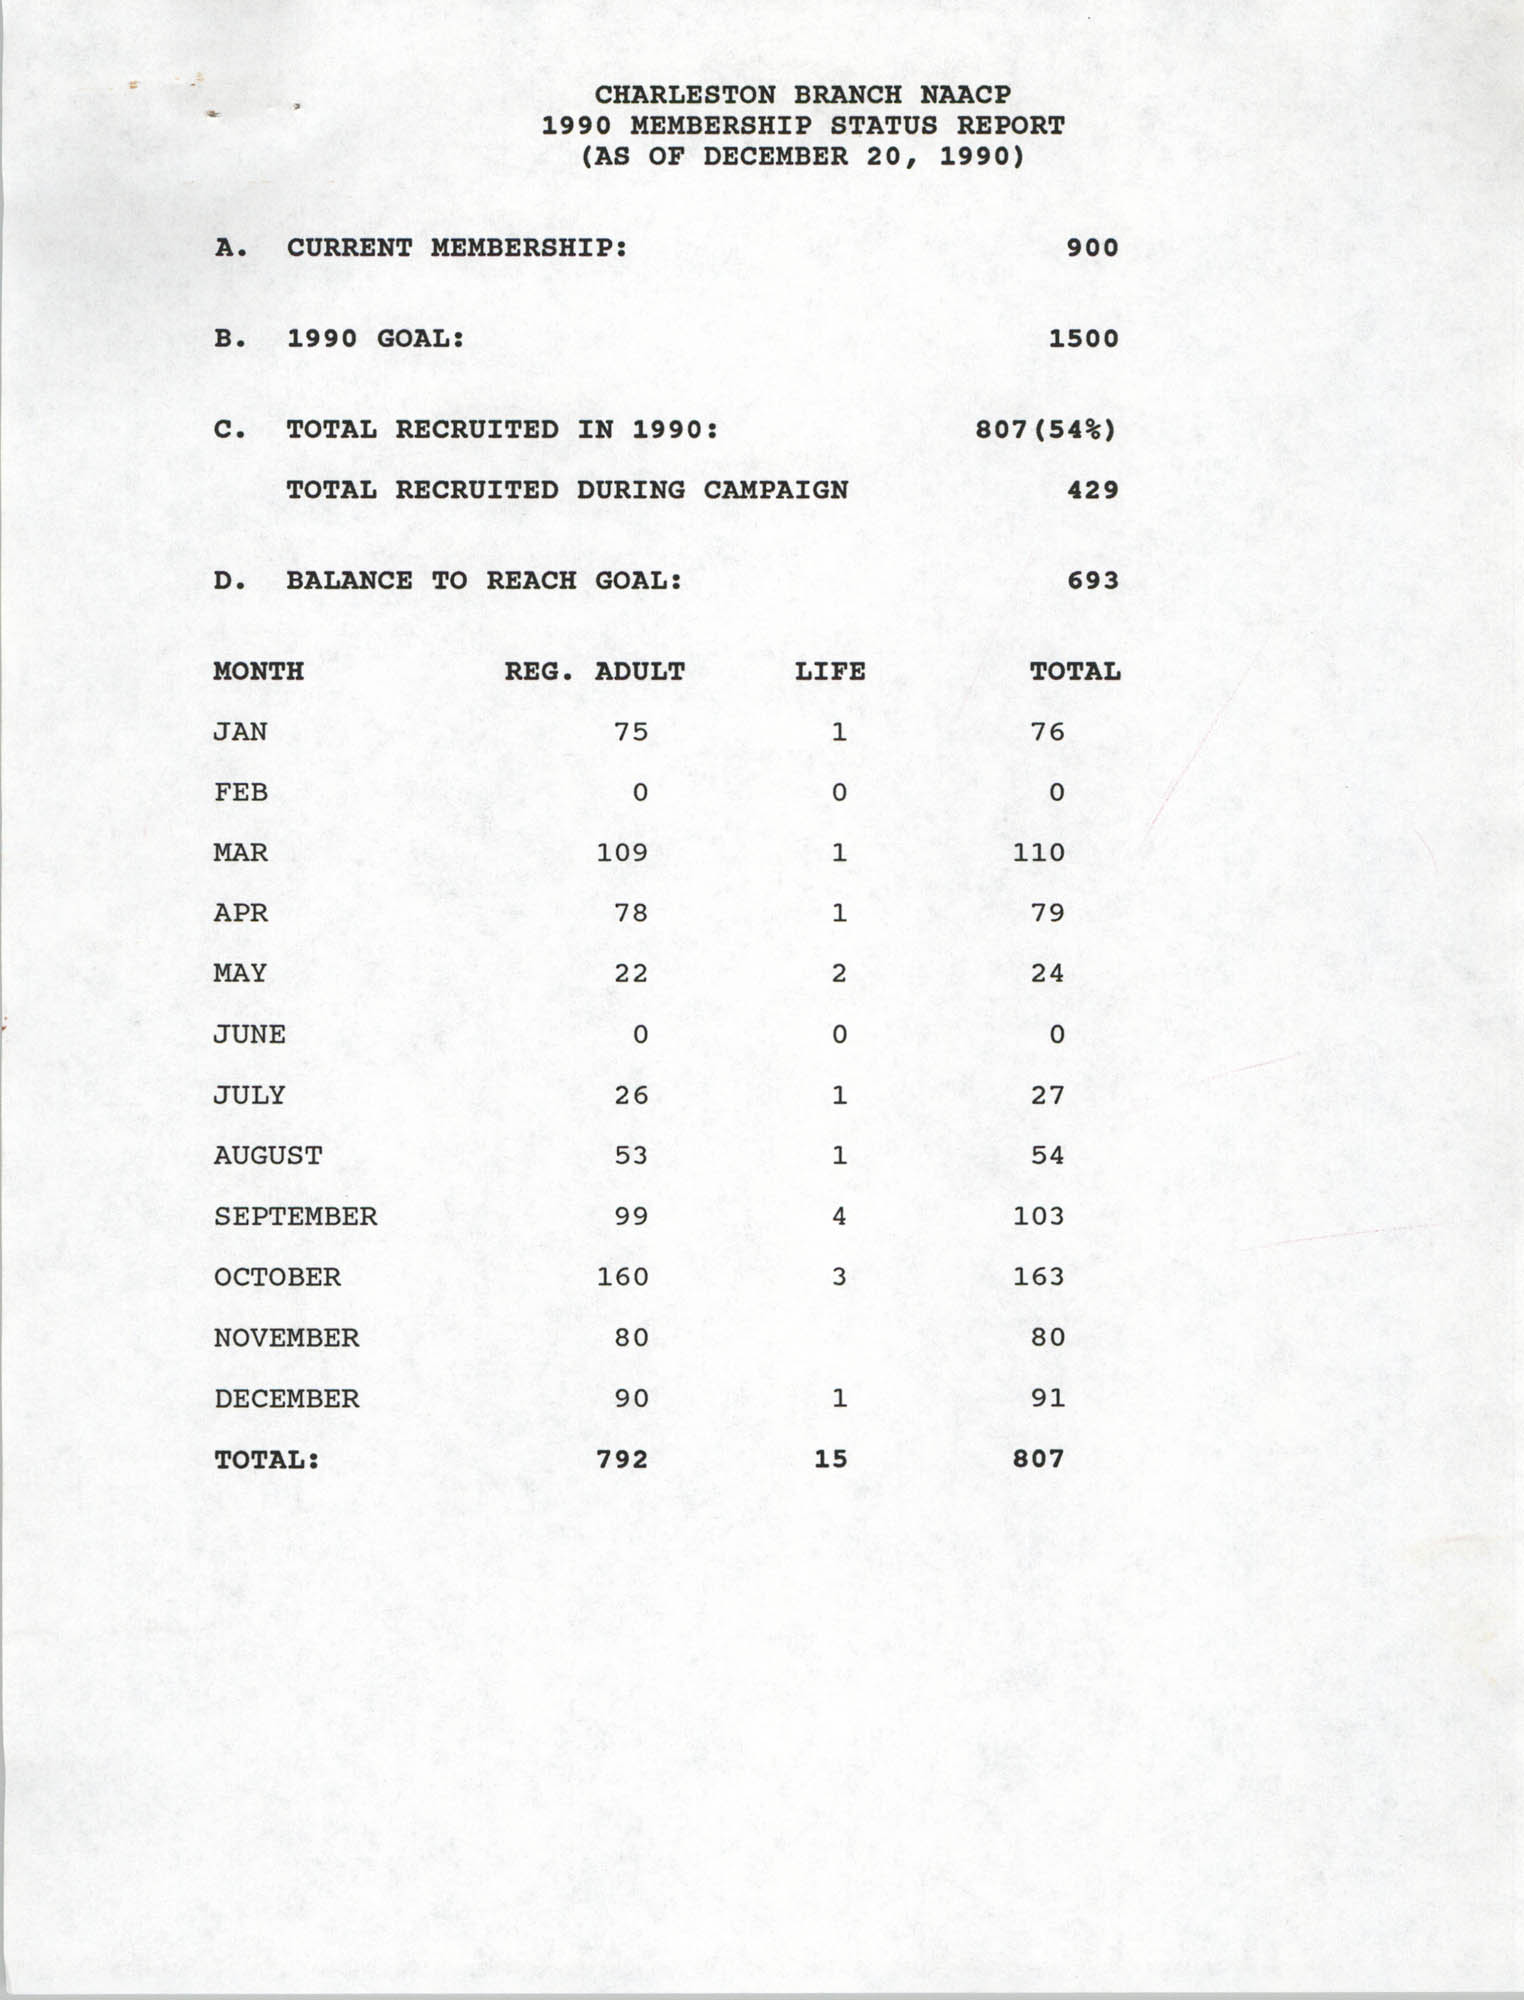 Membership Status Report, National Association for the Advancement of Colored People, December 20, 1990